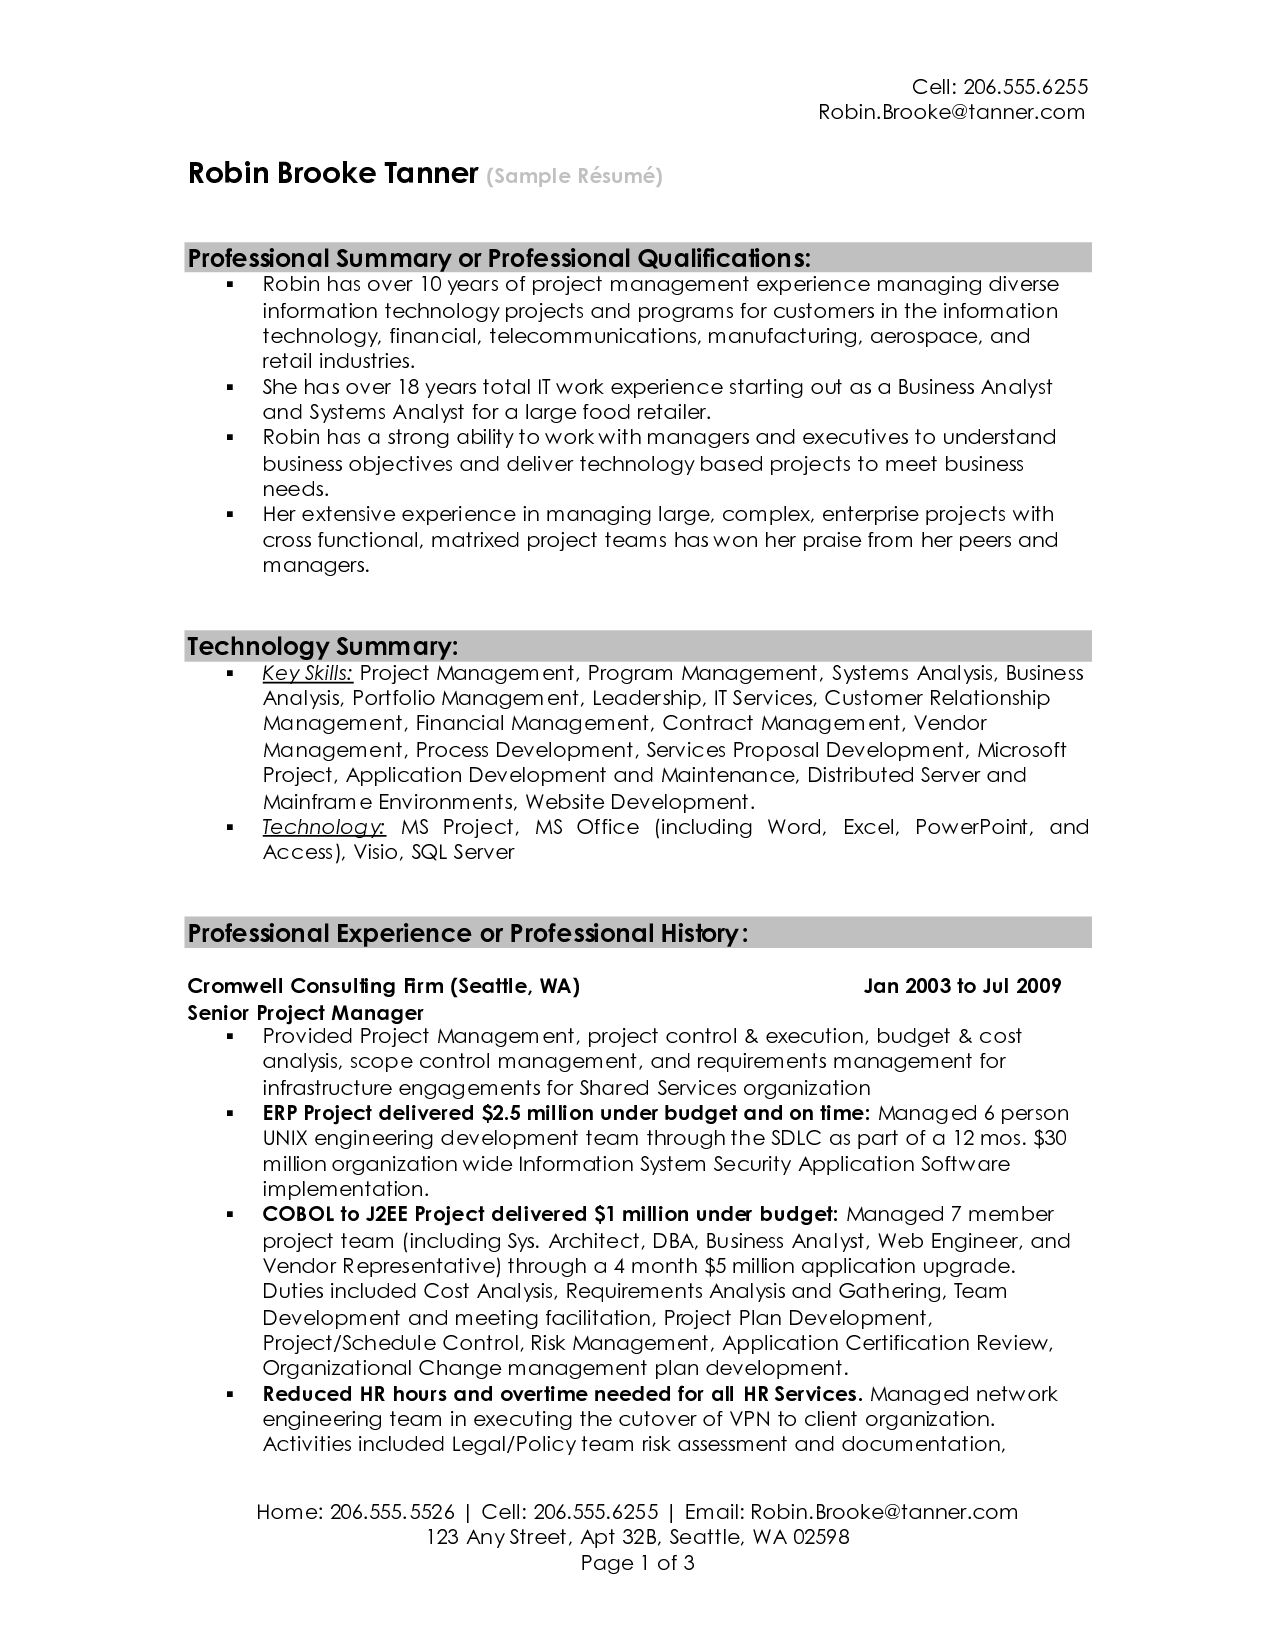 Summary For Resume Example Professional Summary Resume Examples Professional Resume Summary